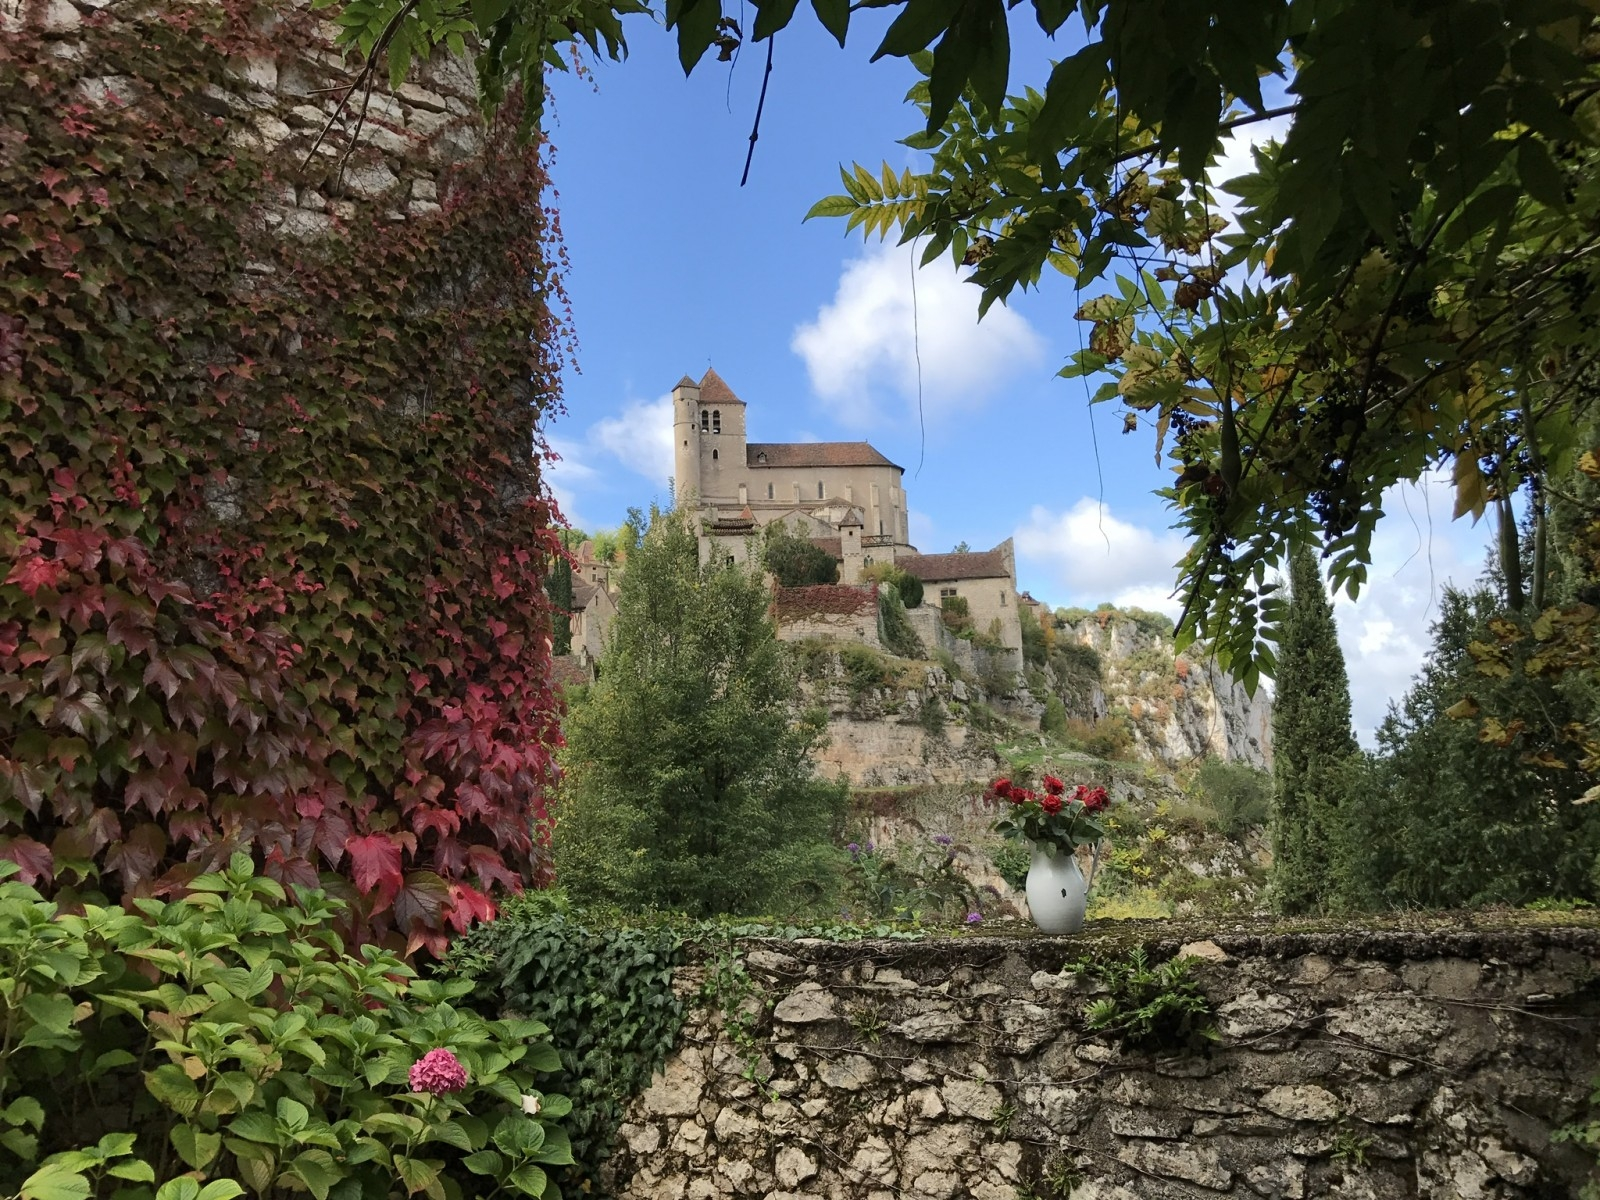 View from Garden September 2017